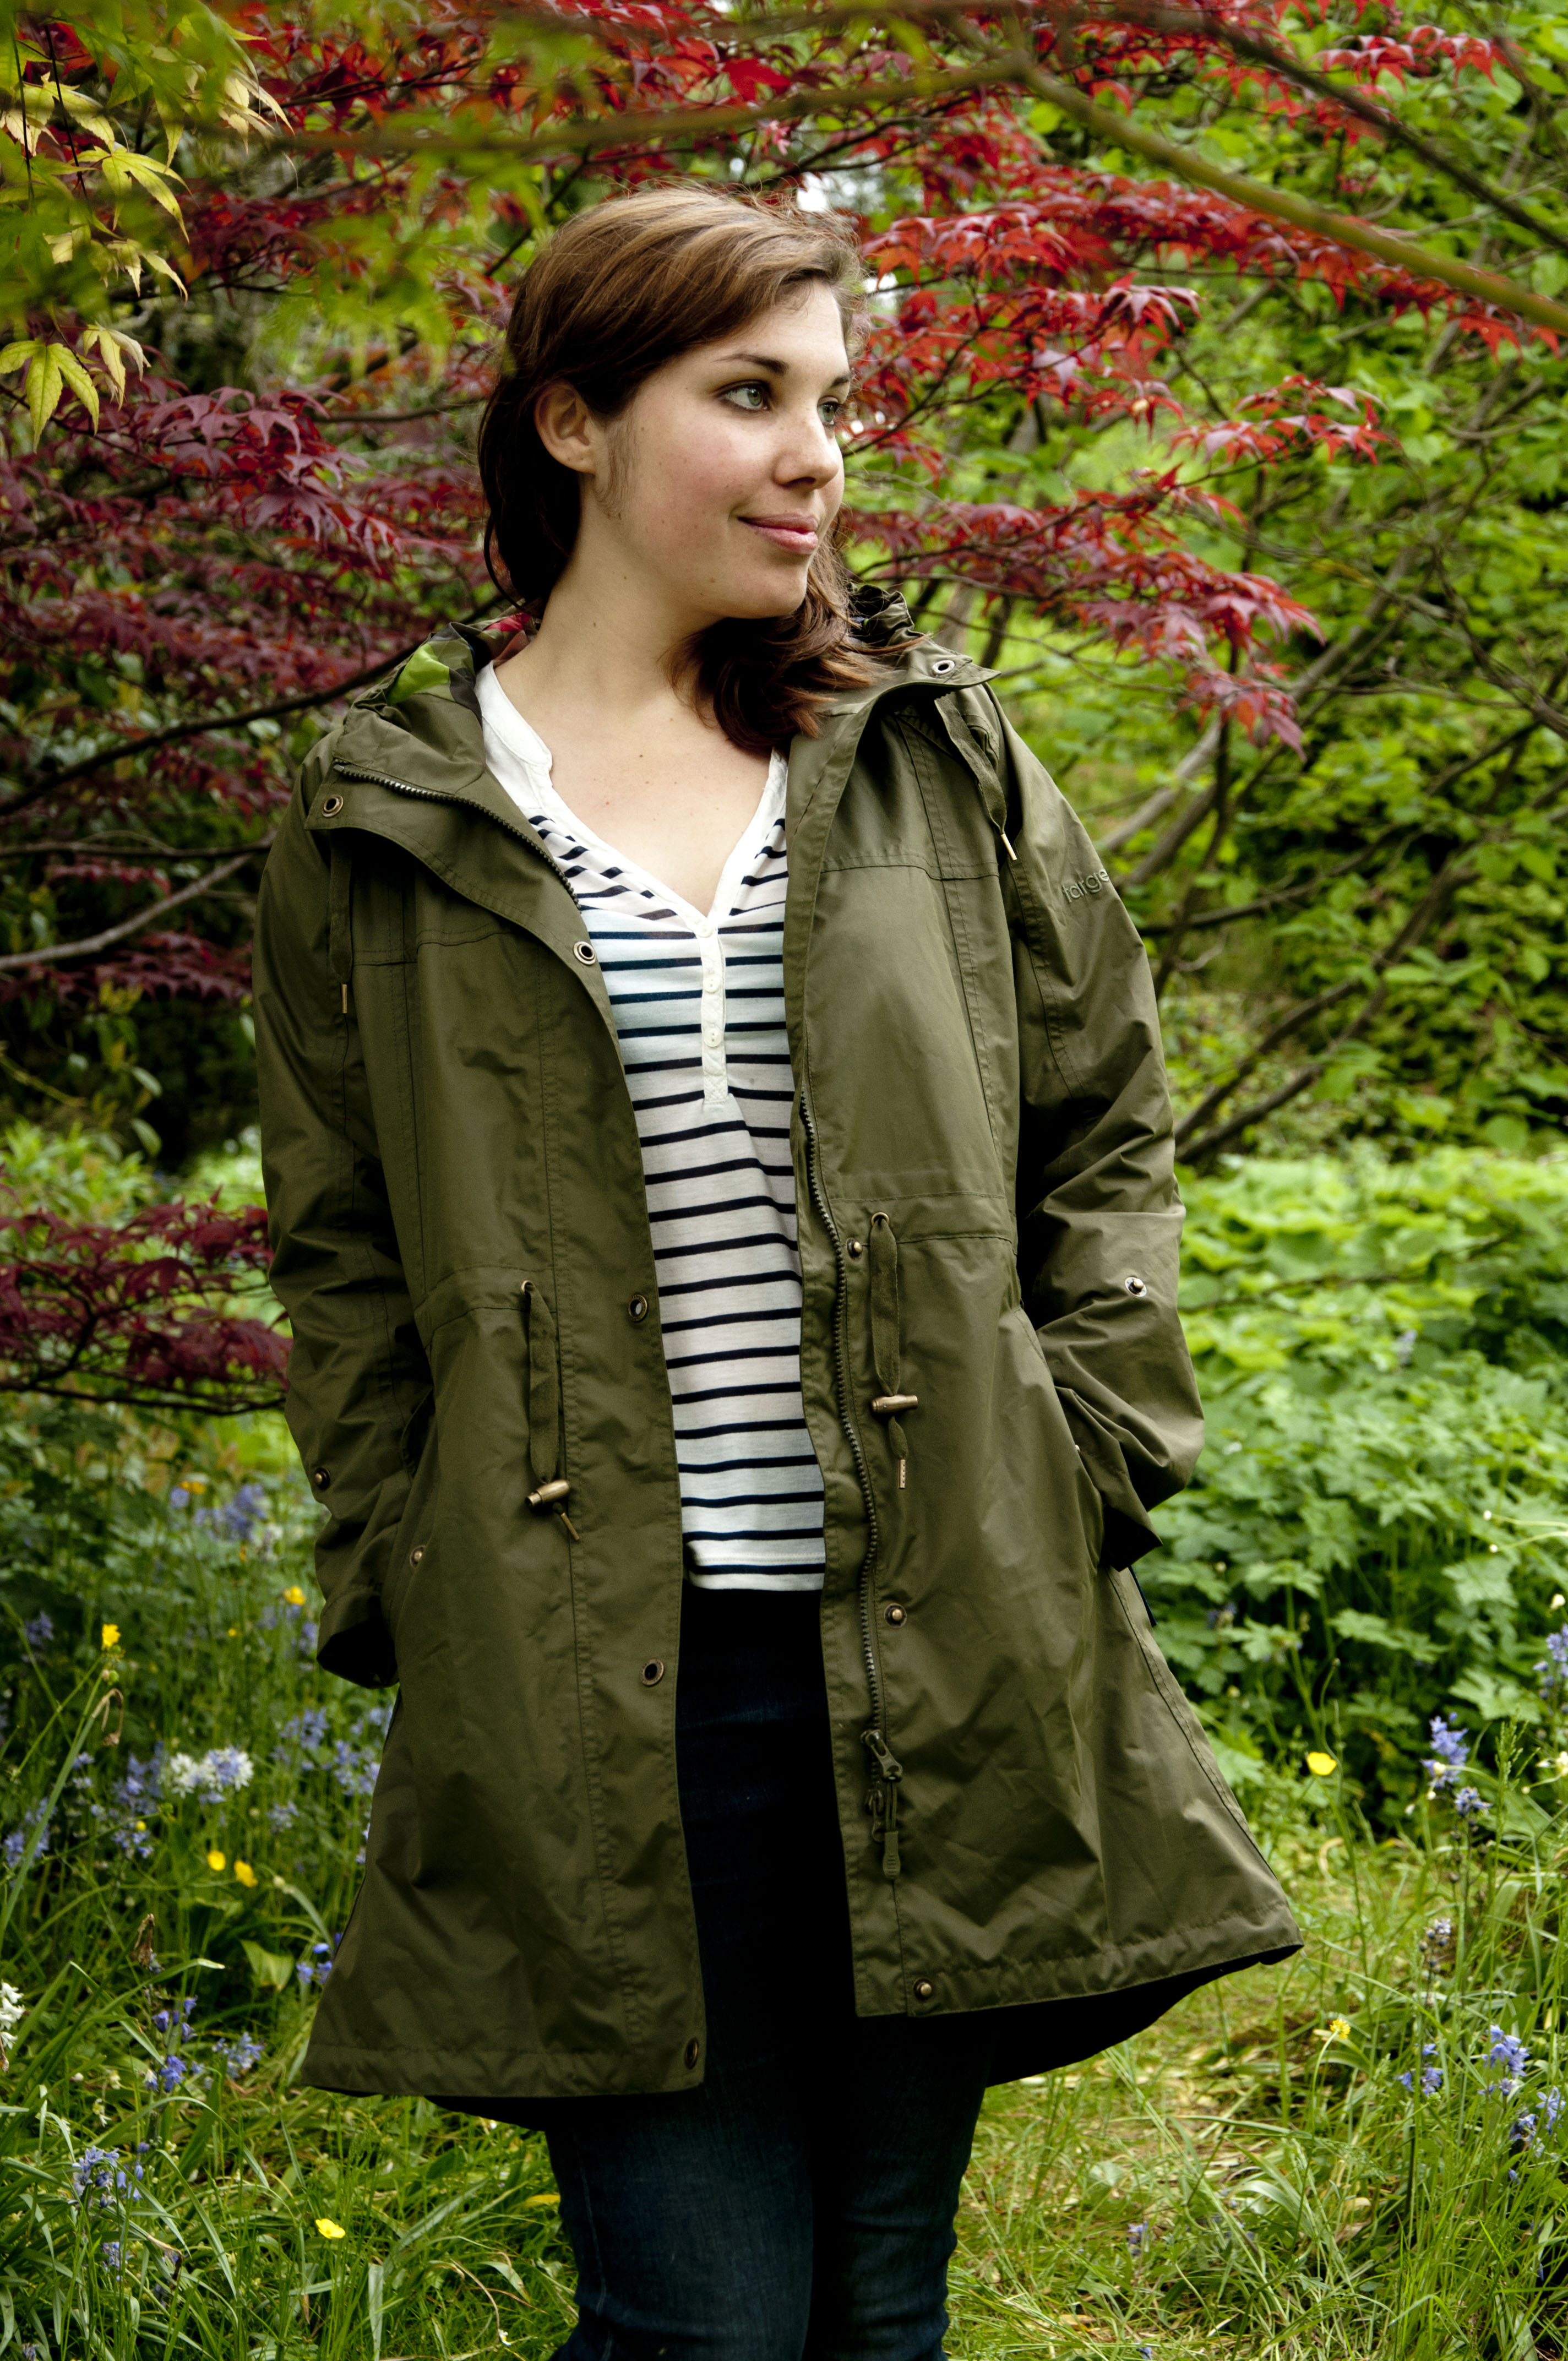 57cornwall Target Dry Emily Parka